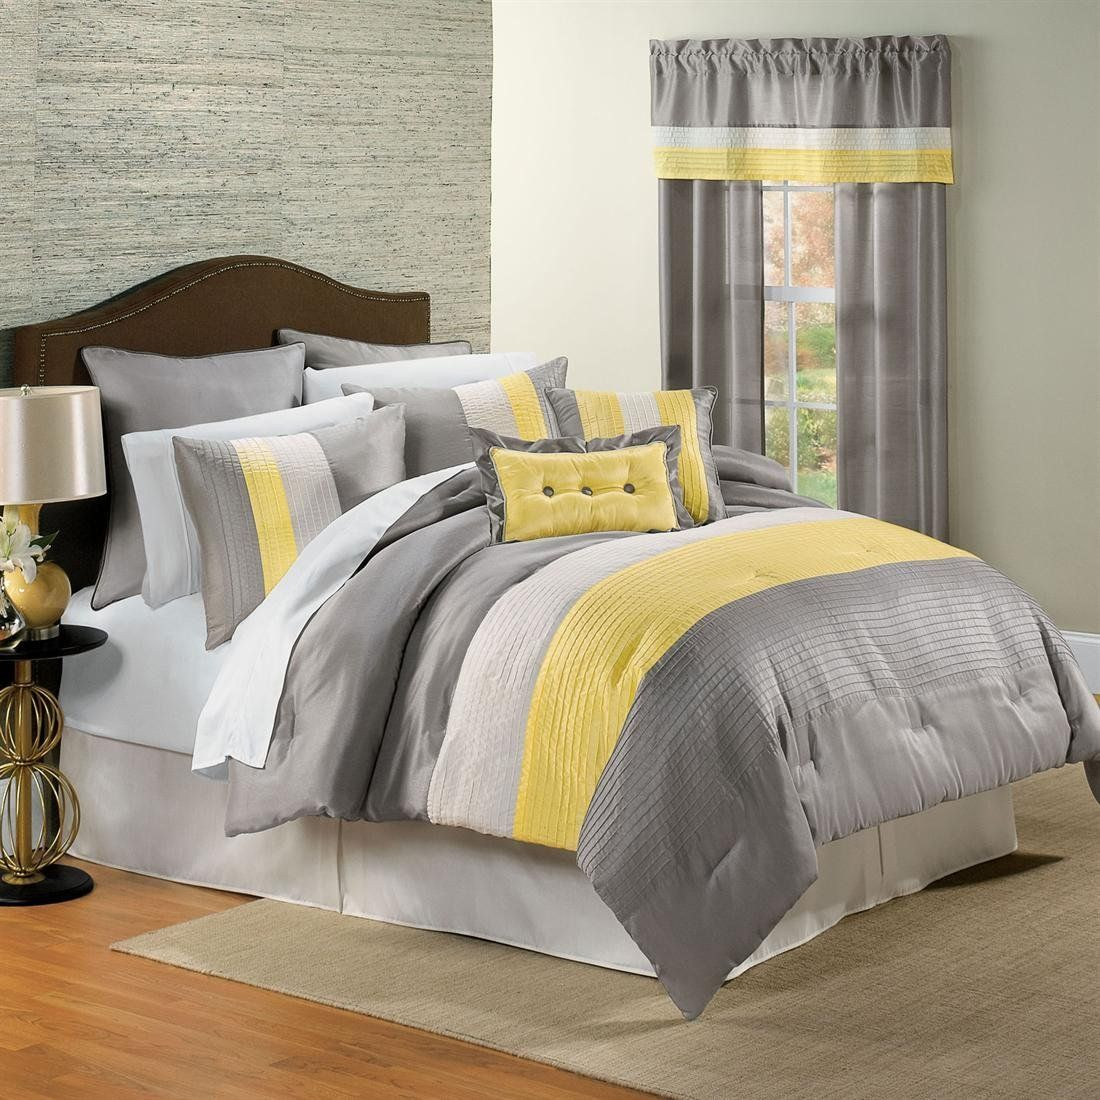 Yellow And Gray Bedroom | Yellow And Gray Bedding That Will Make Your Bedroom Pop